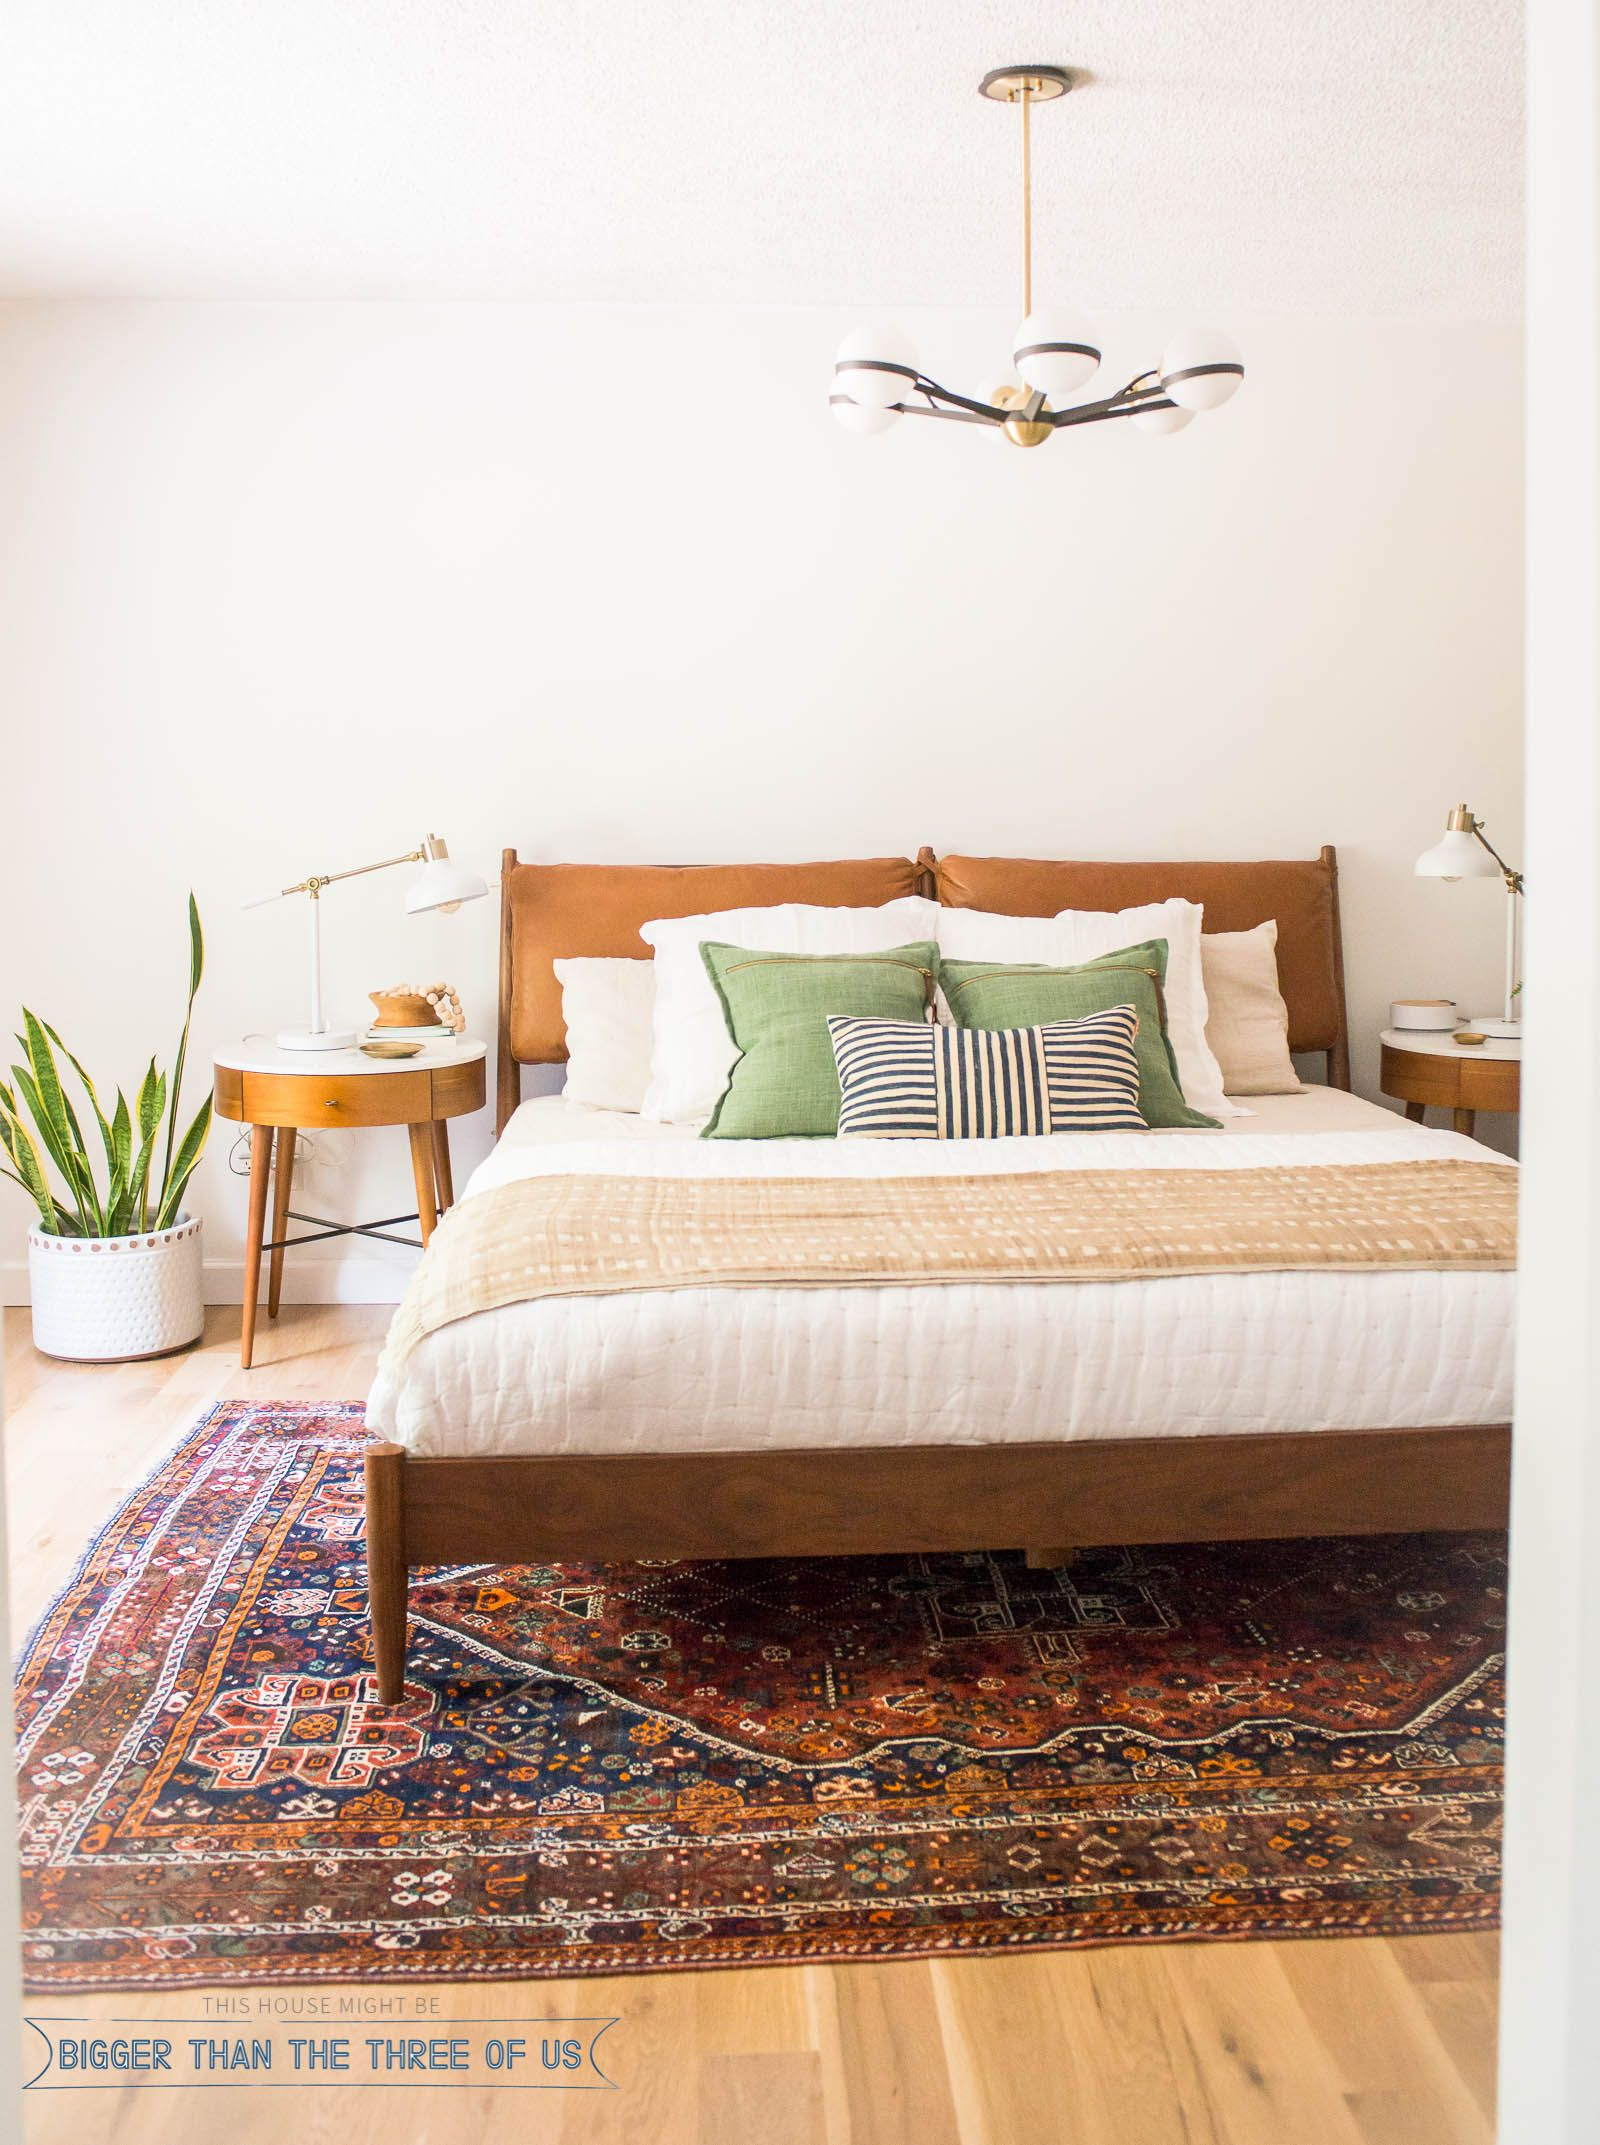 Mid Century Modern Bedroom - Bigger Than the Three of Us